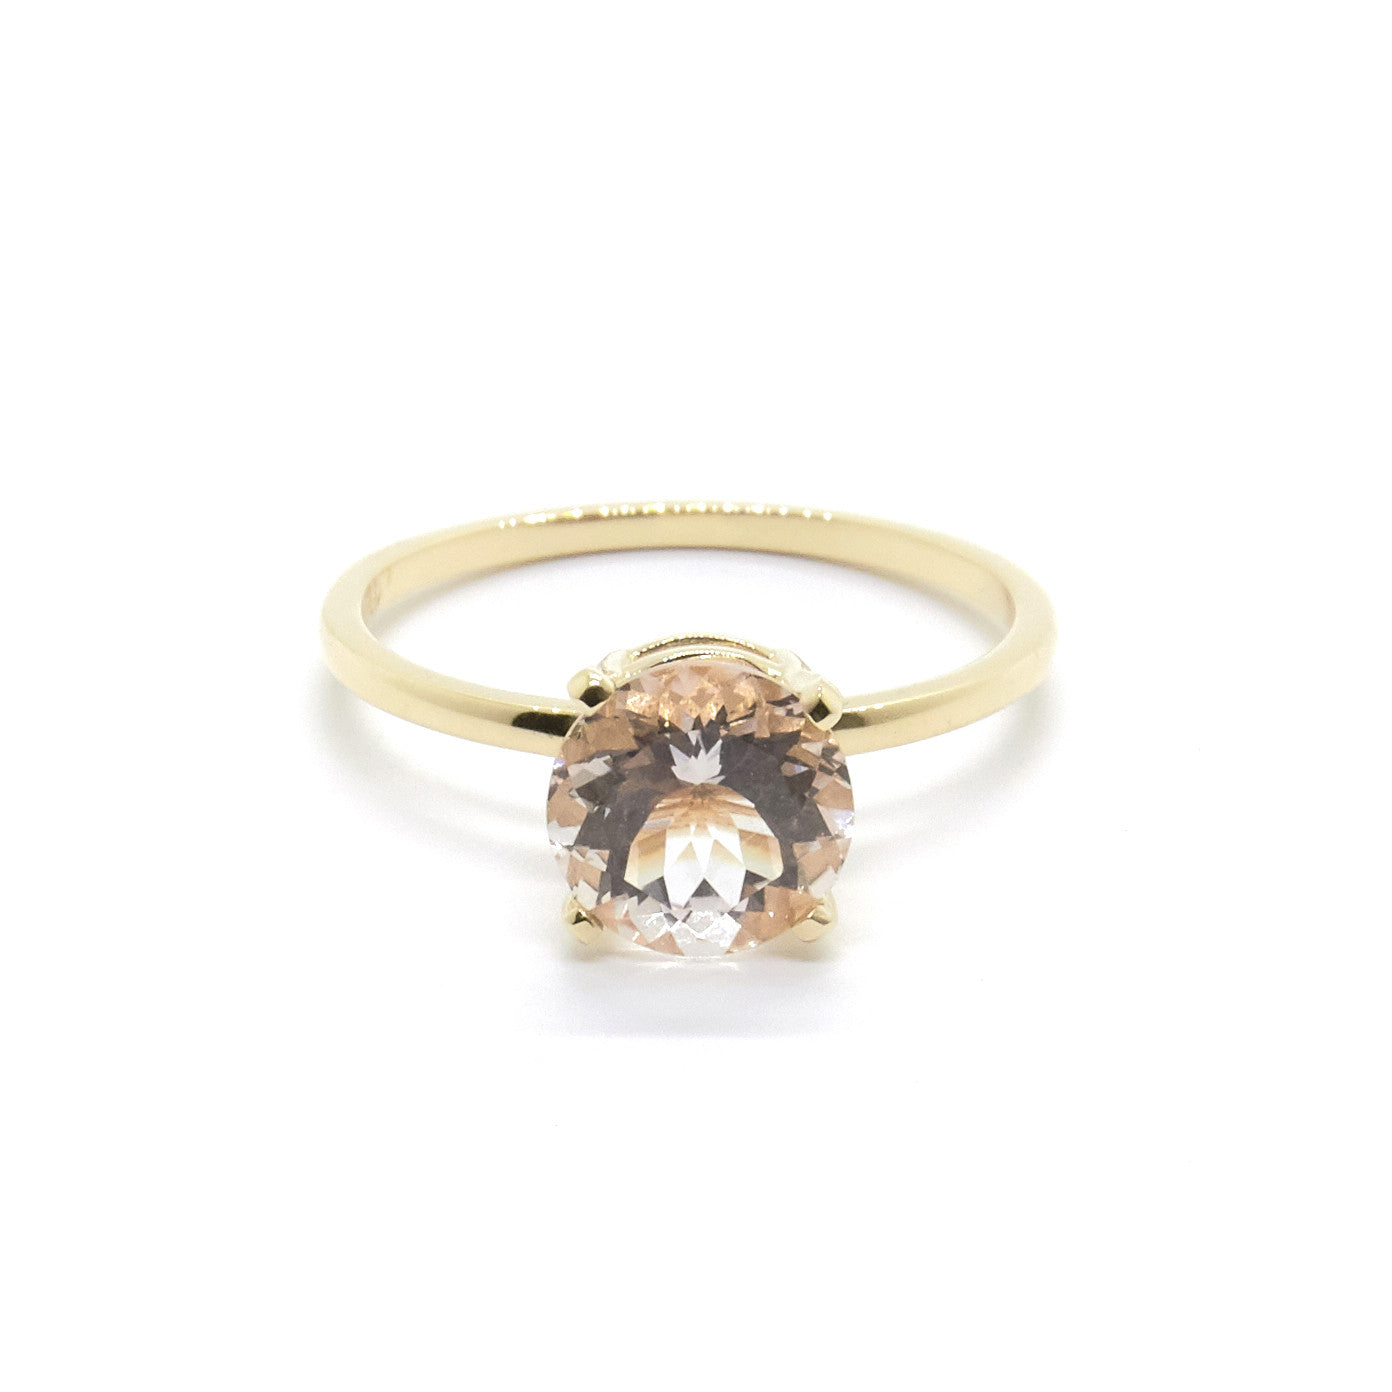 Precious Morganite ring